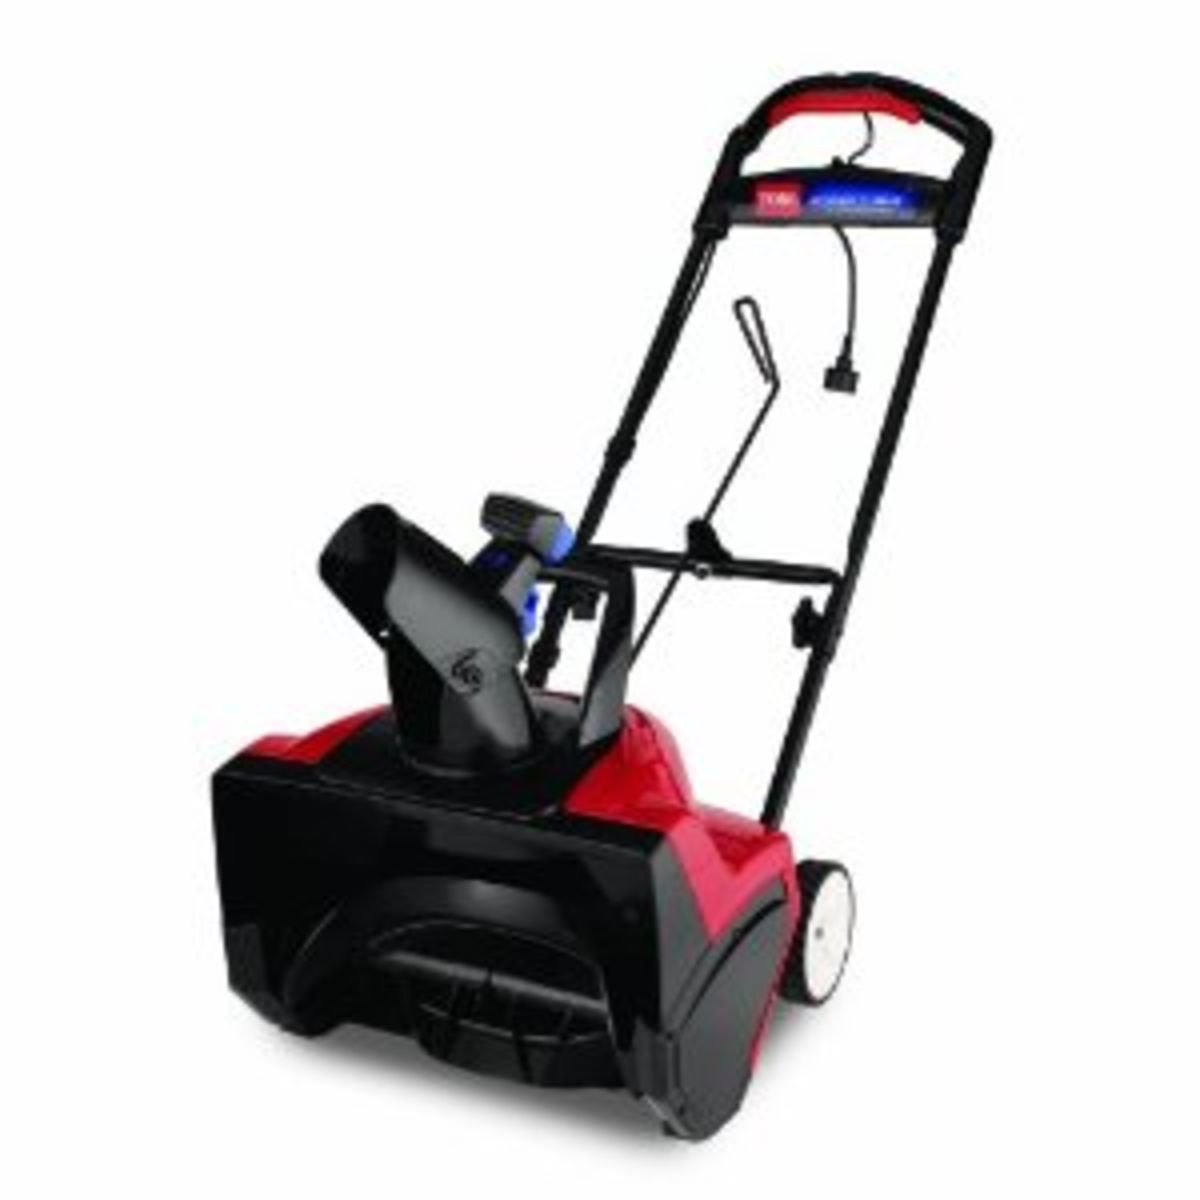 home depot snowblower sale with Zus Best Rated Lightweight Electric Snow Blowers On Sale Reviews And Ratings 2015 on Toro Single Stage Snow Blower Owners Manual moreover Toro 38361 Power Shovel 7 5   Electric Snow Thrower furthermore Arizona Storage Sheds For Sale Near You 4 moreover Rental together with P7152.